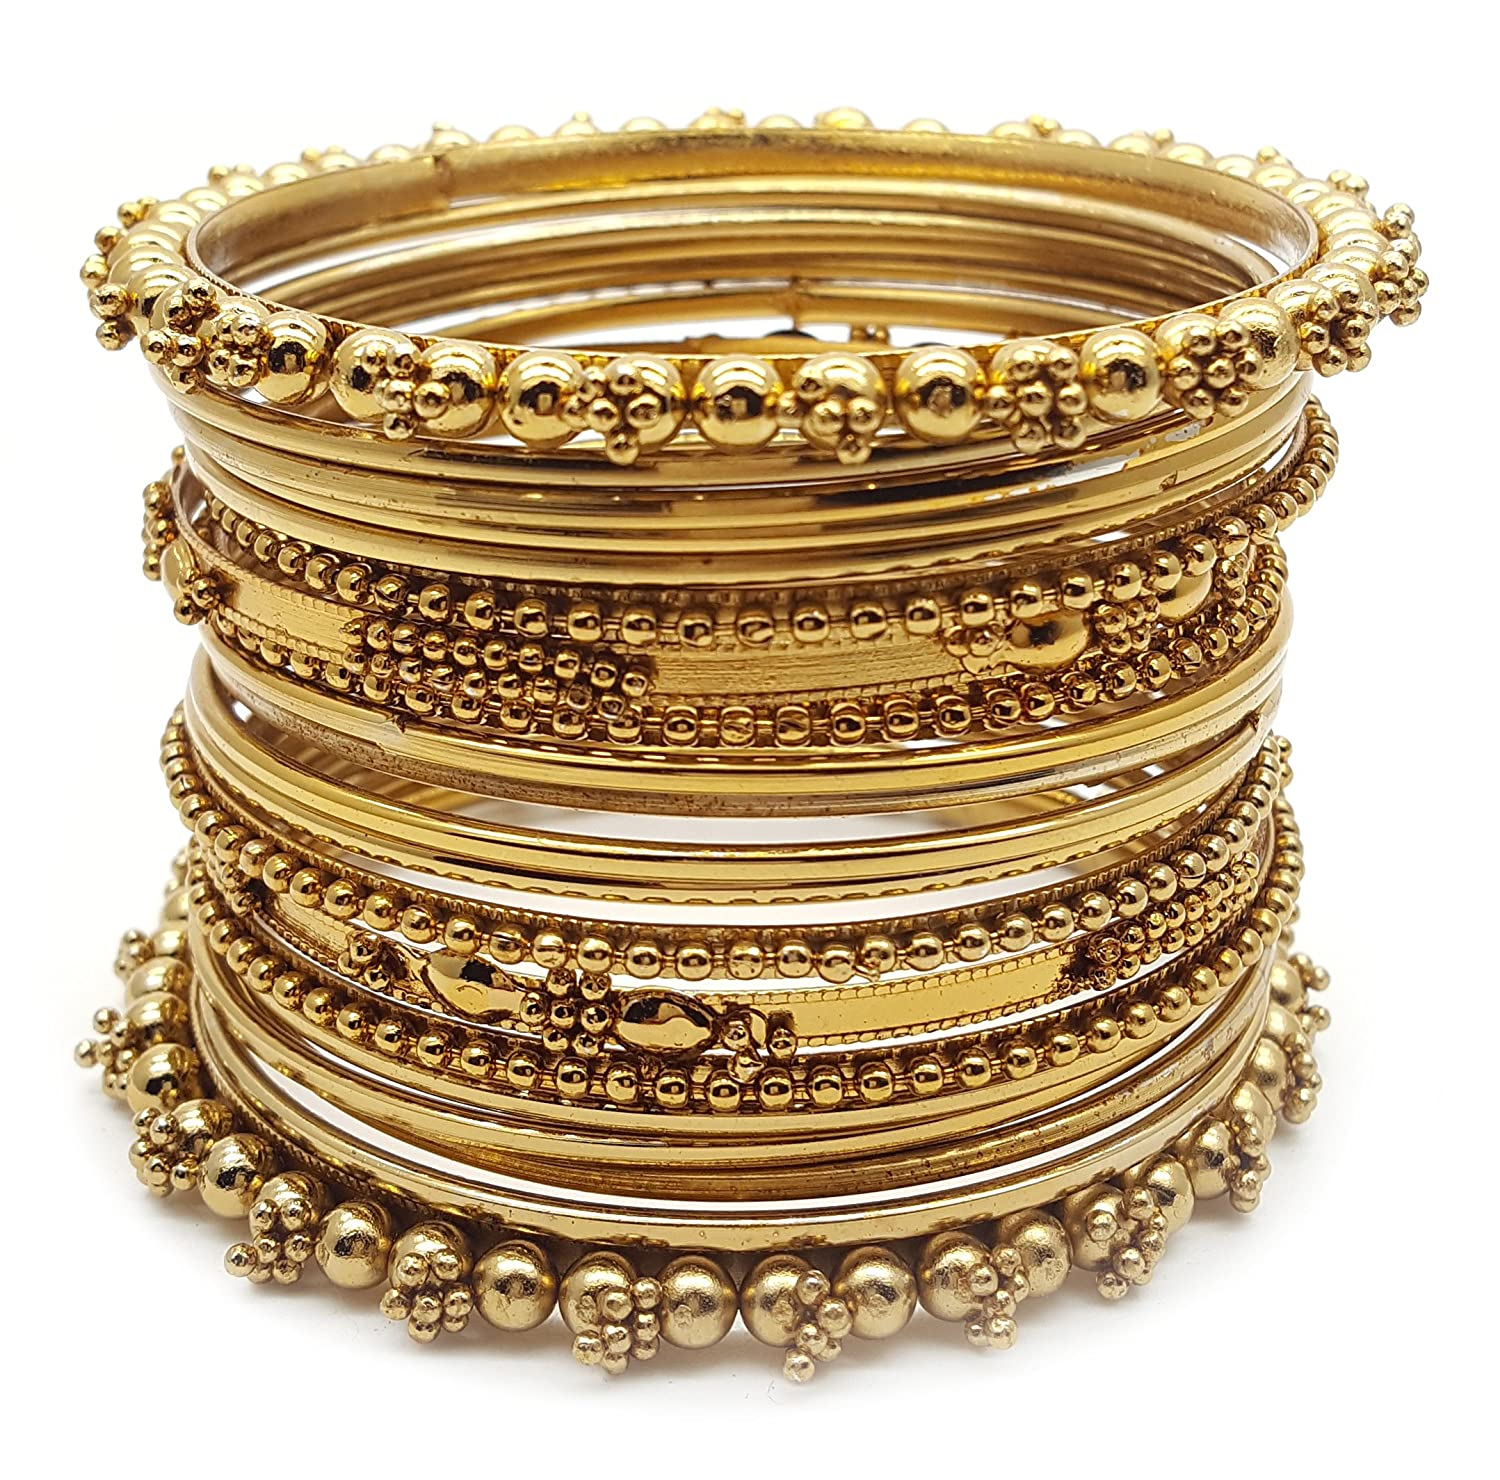 the o bangles indian silver set motif traditional and your metal sensibilities bangle compliment antique express pcs